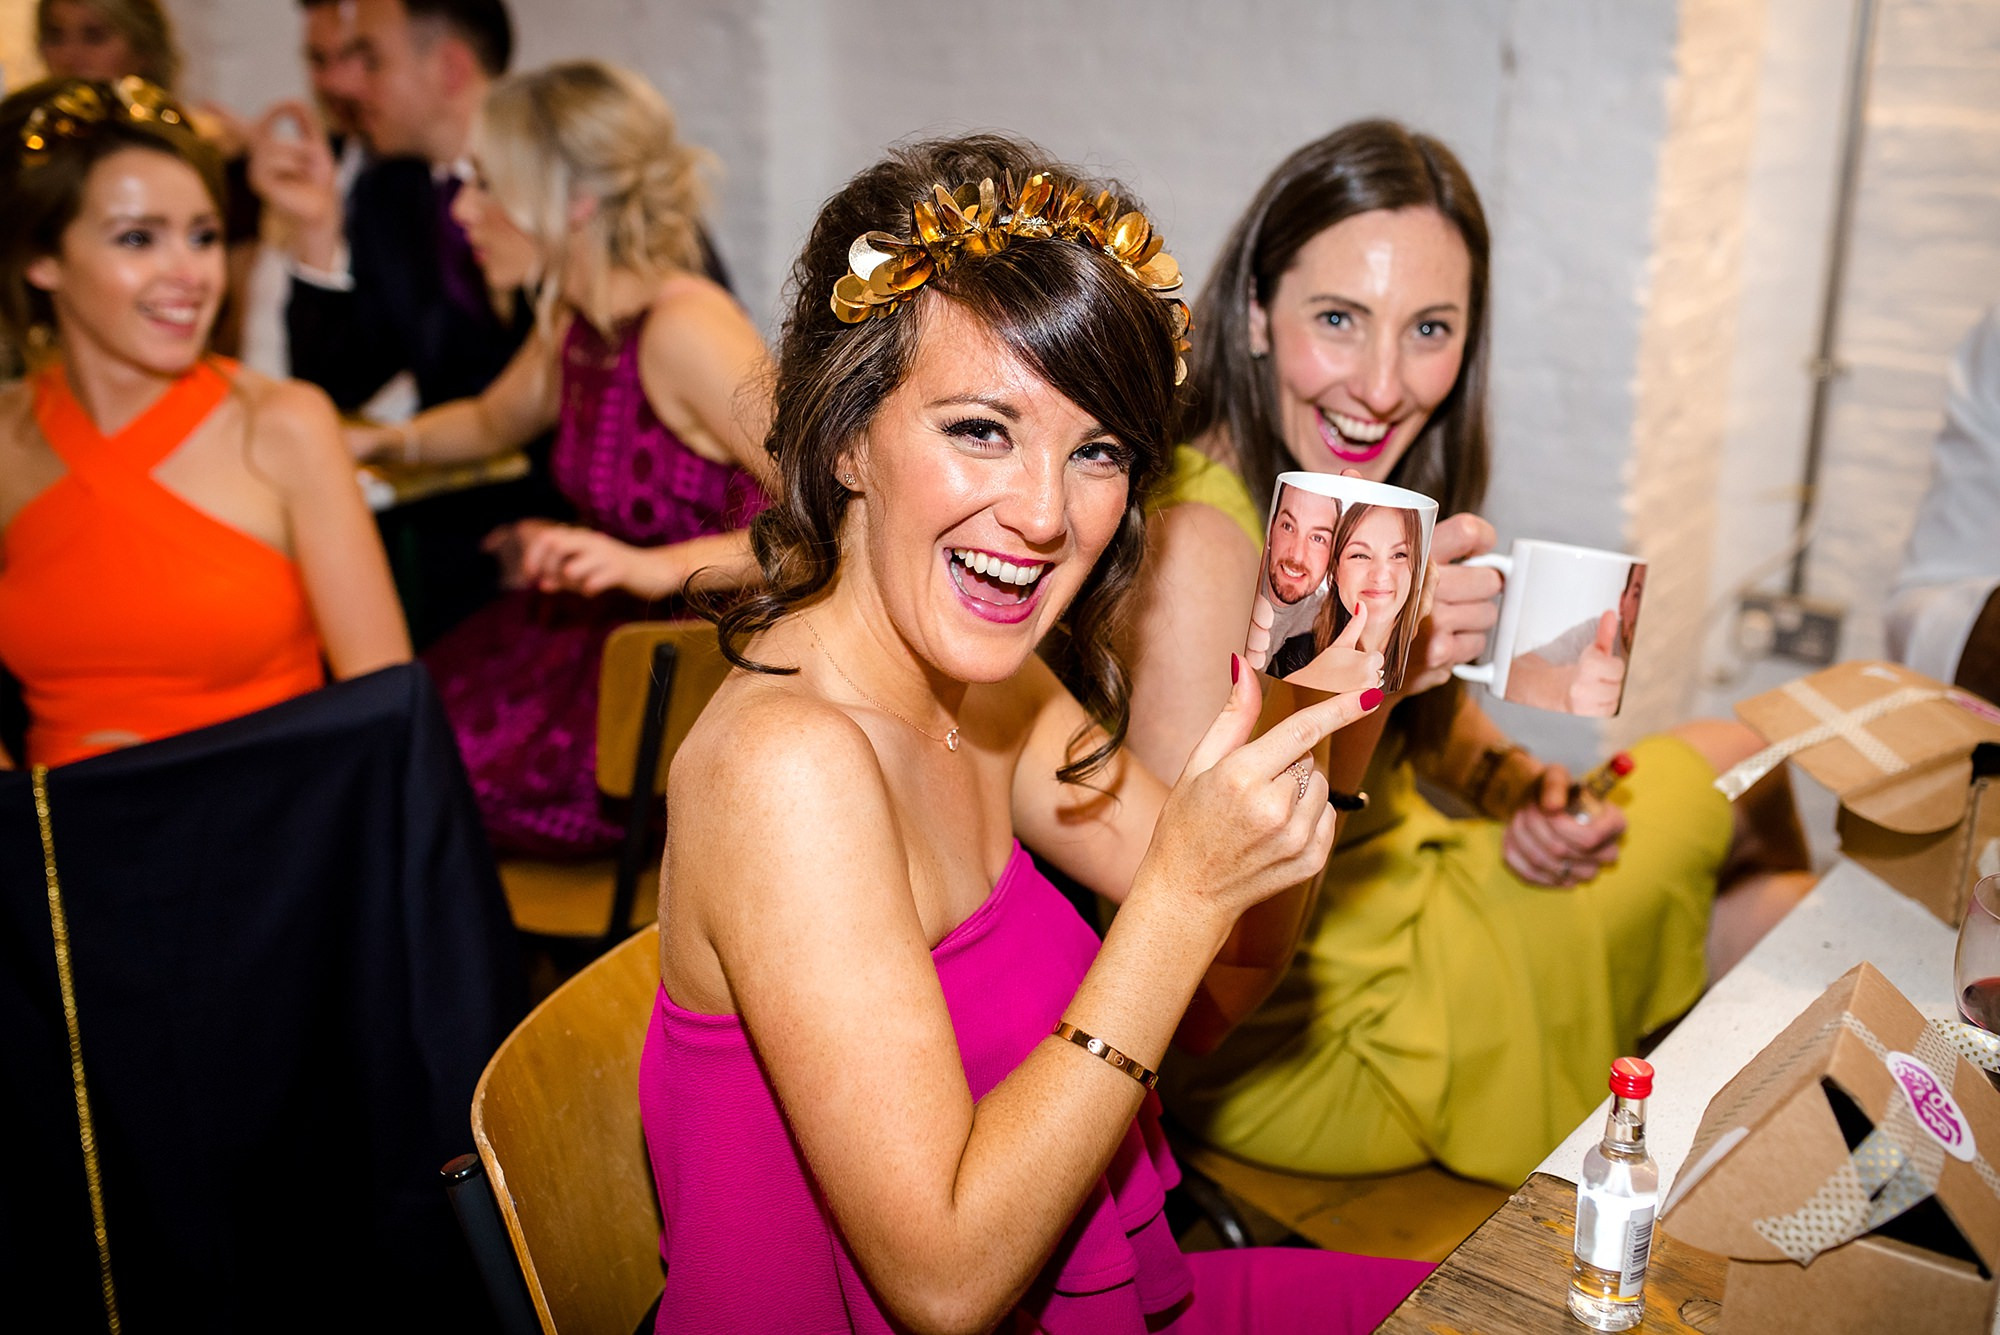 Fun London Wedding bridesmaid shows off a mug with bride and rooms faces on as quiz prize